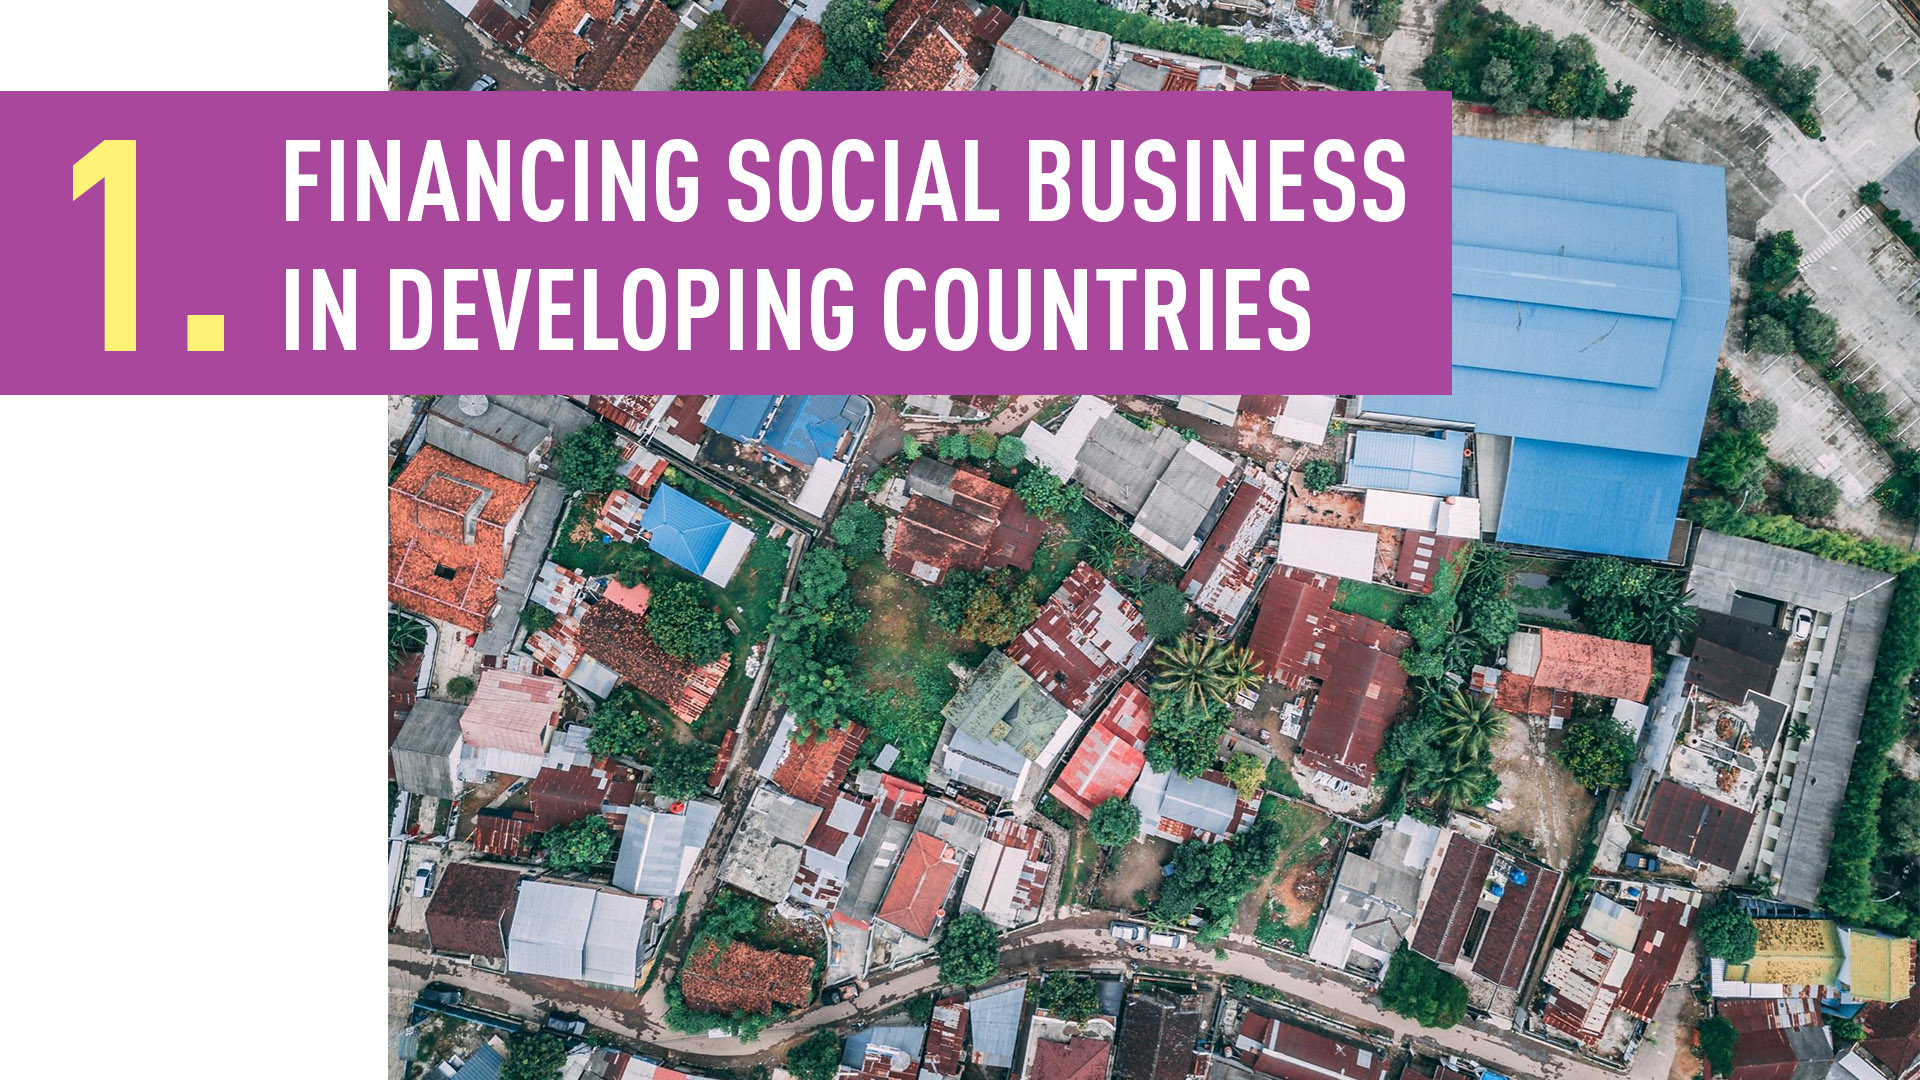 FINANCING SOCIAL BUSINESS IN DEVELOPING COUNTRIES